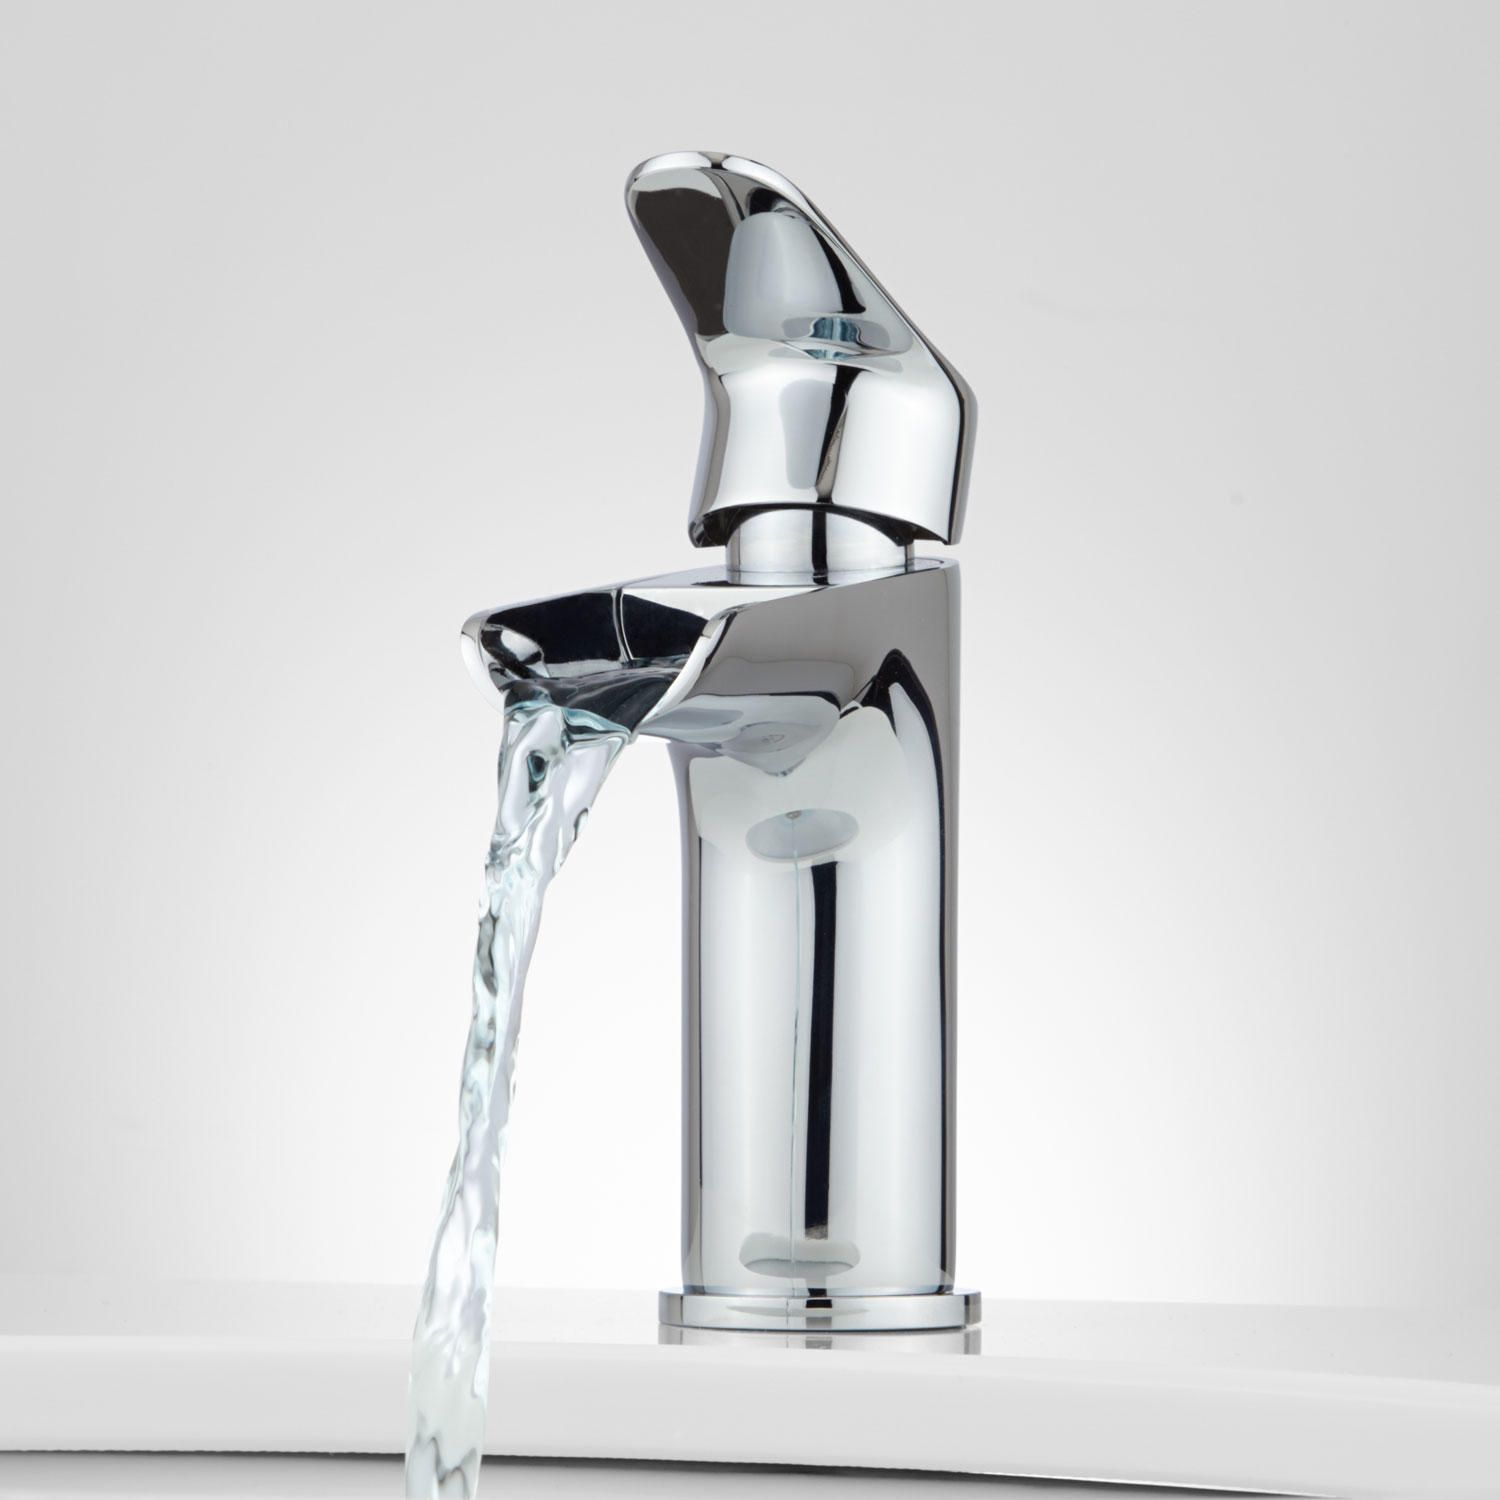 Pagosa Waterfall Single-Hole Bathroom Faucet | Waterfall faucet ...